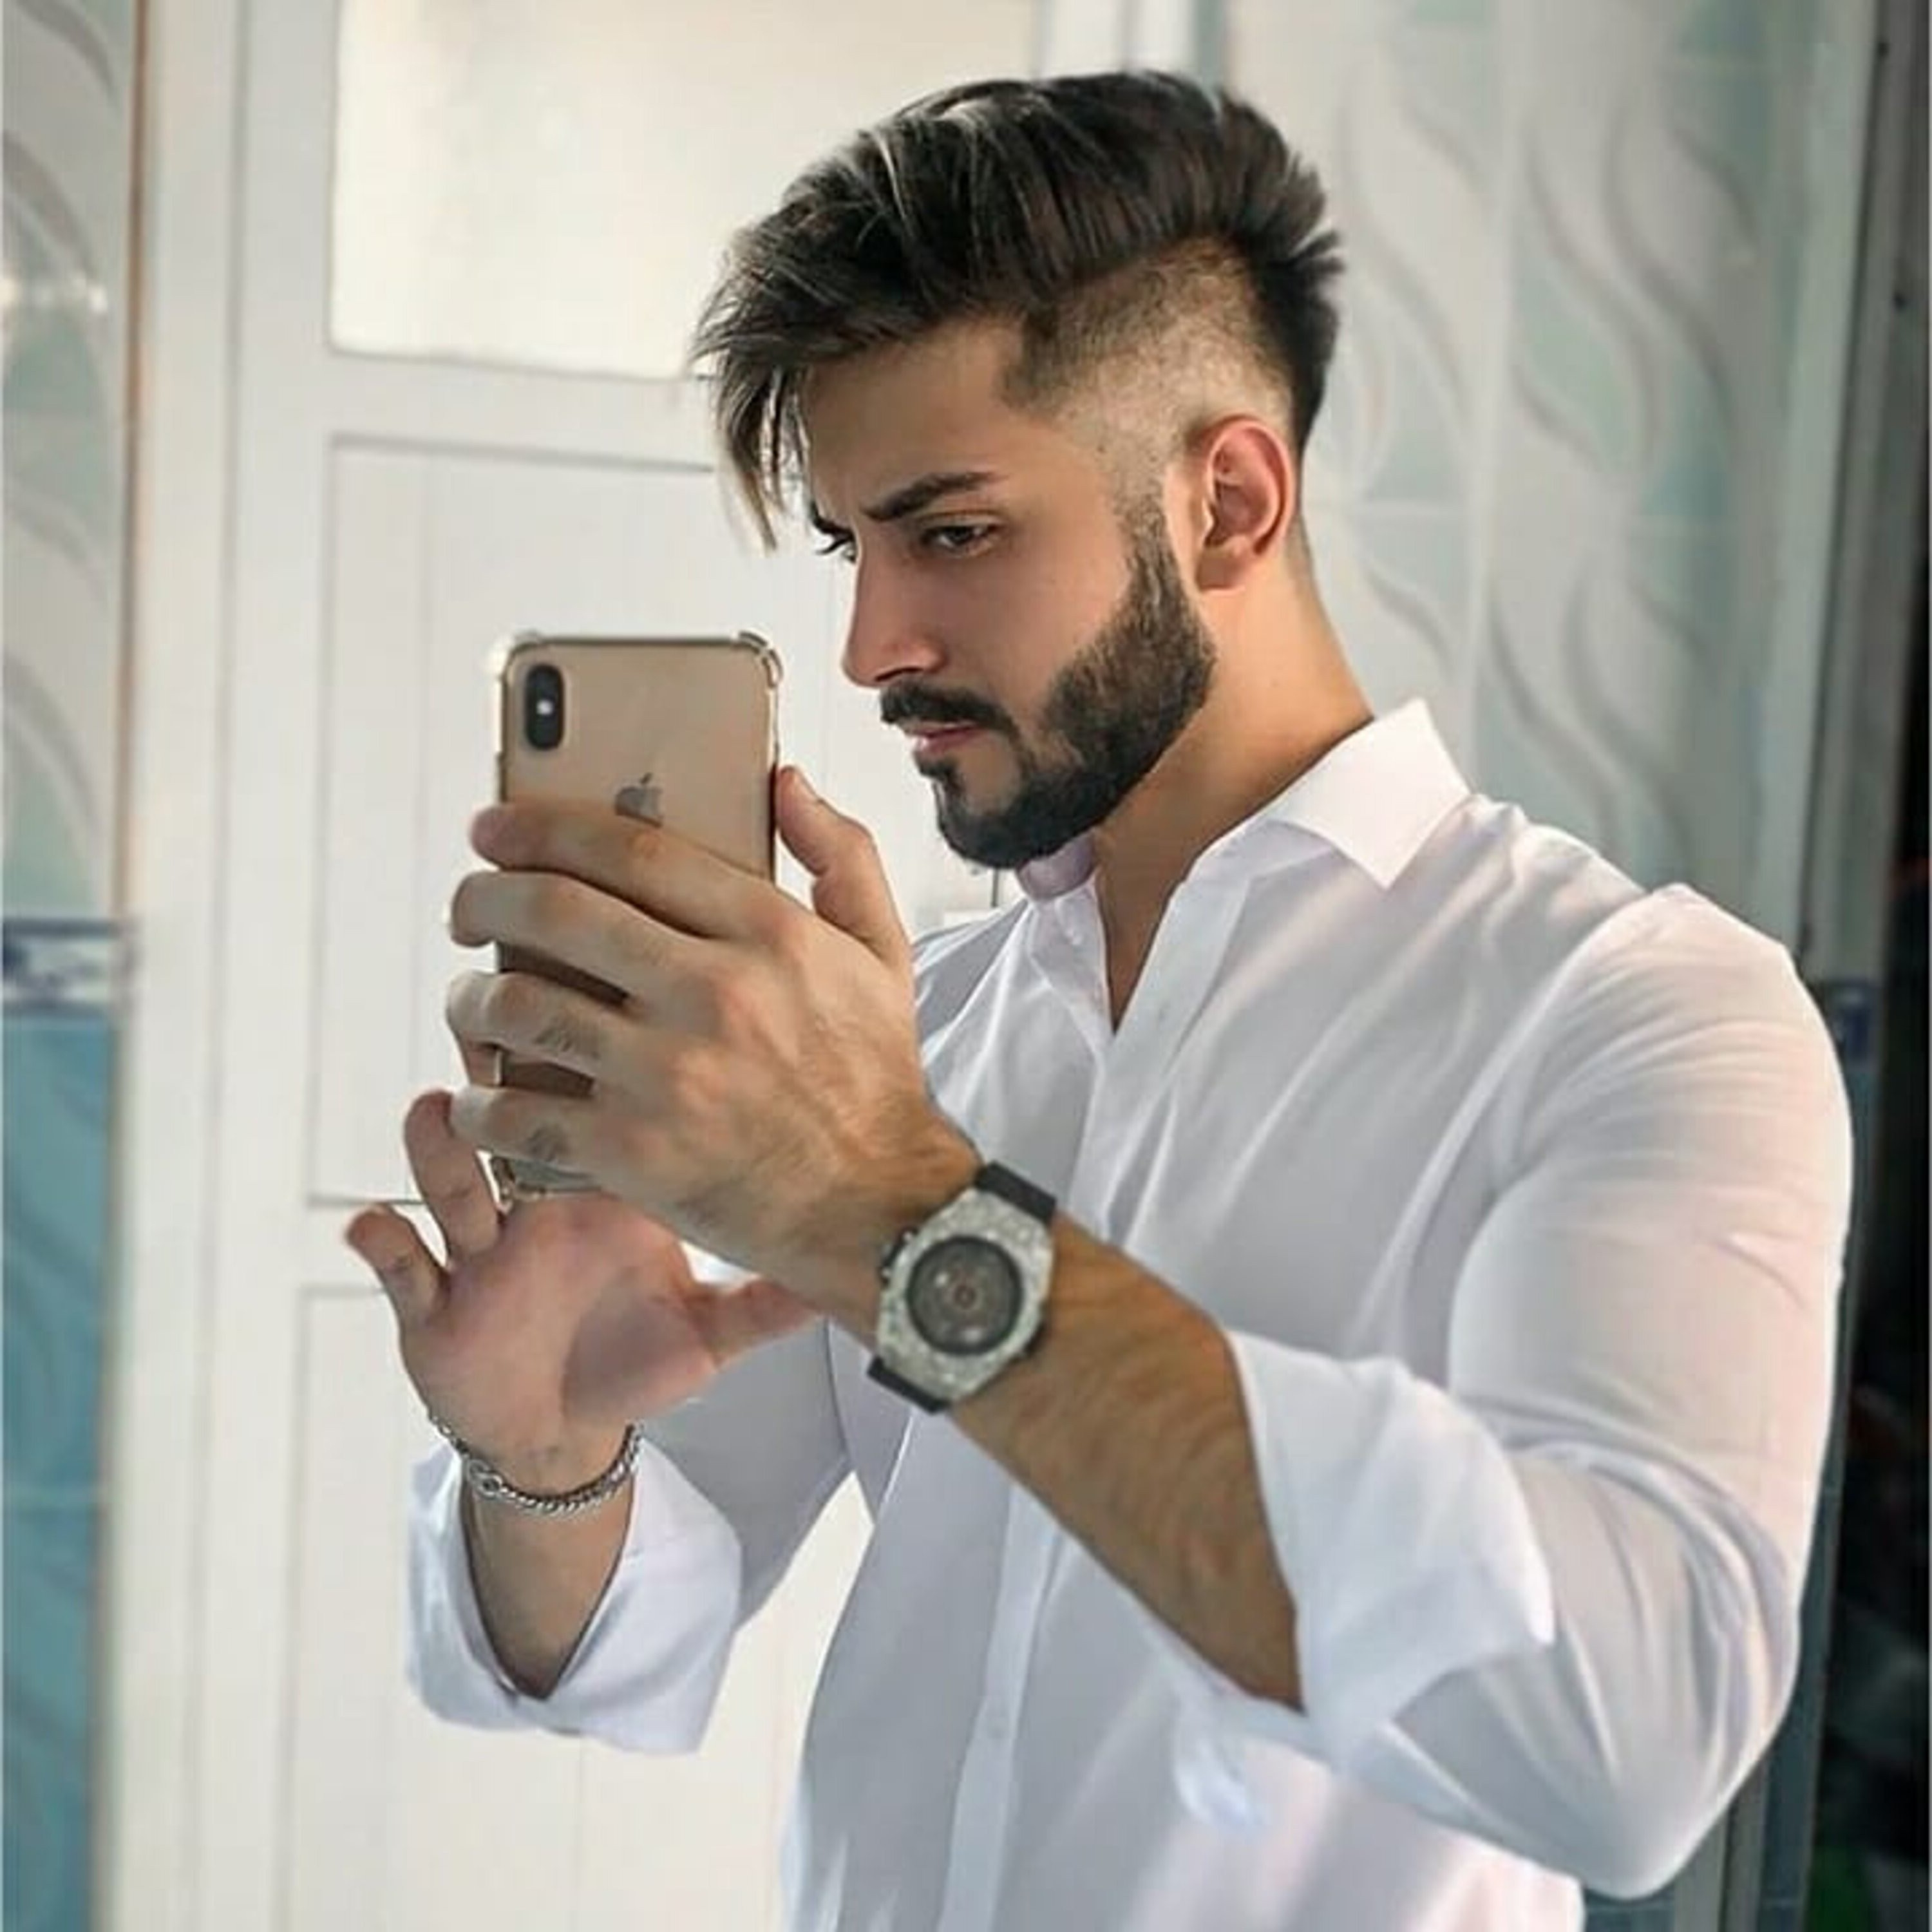 A stubble beard style for young guys.